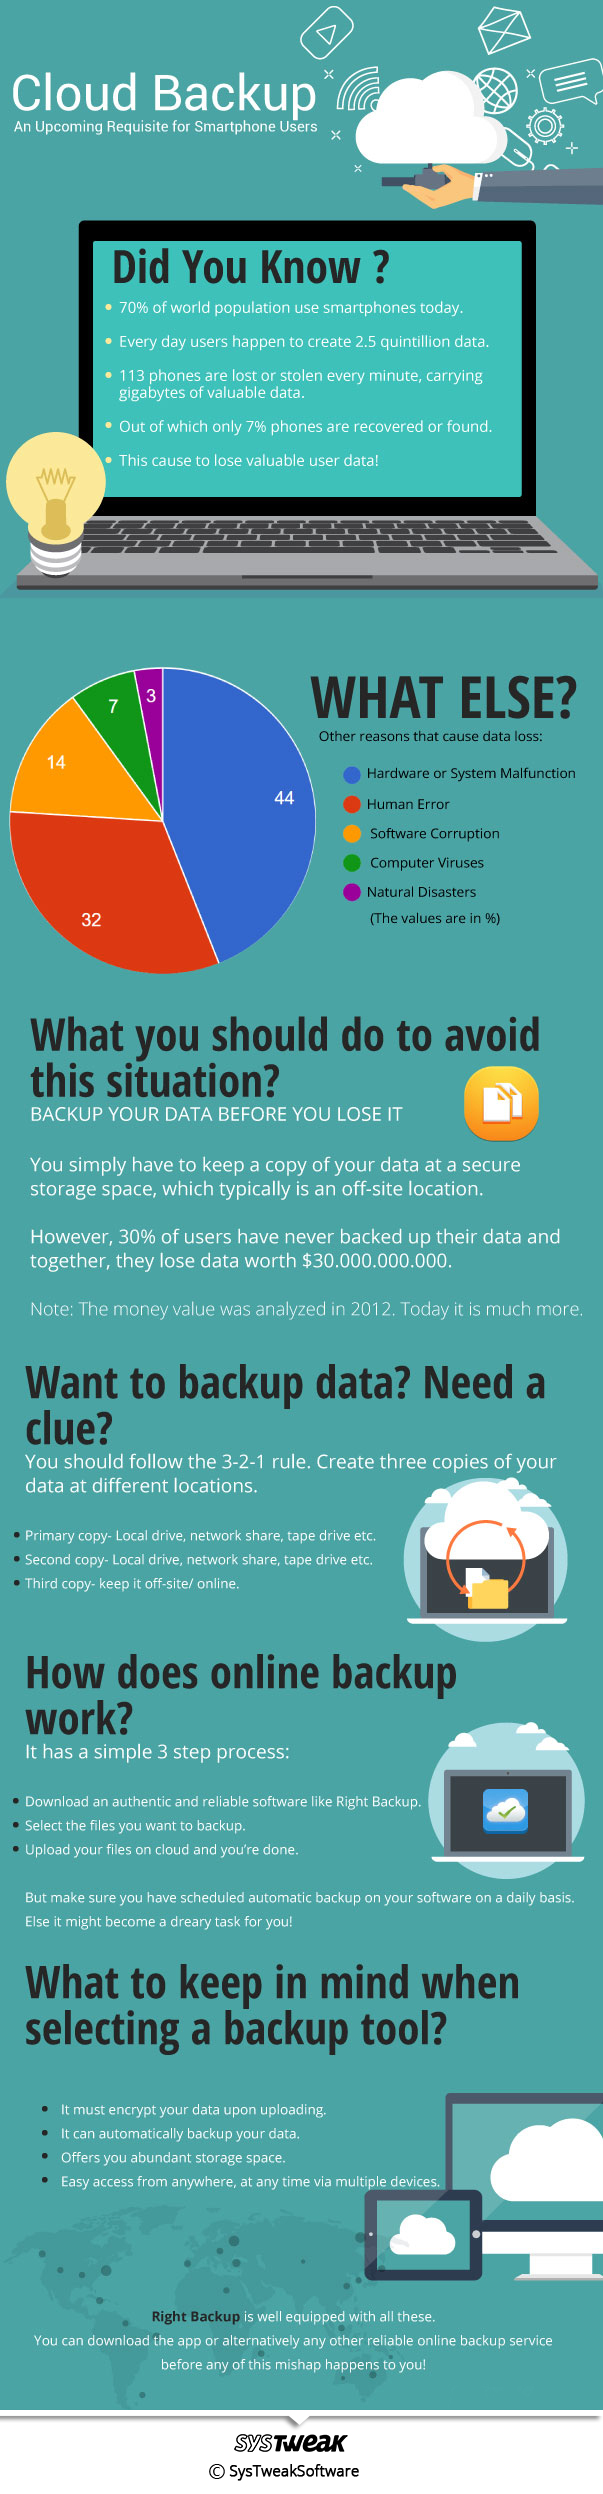 cloudbackup Infographic